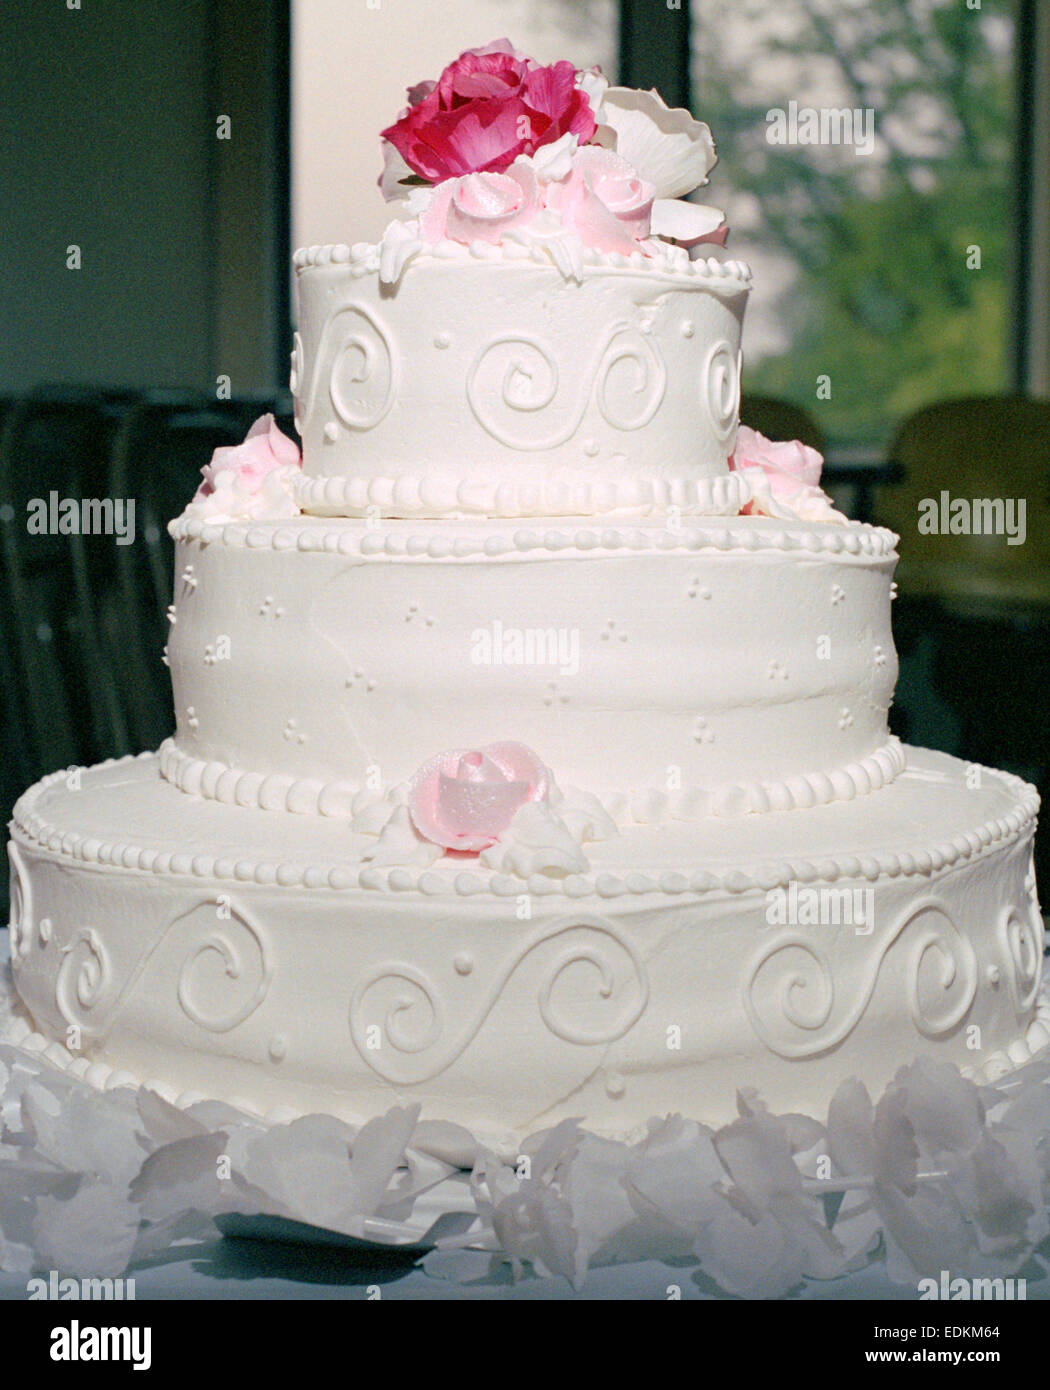 pink and white rose wedding cake a 3 tier white wedding cake with pink roses stock photo 18557